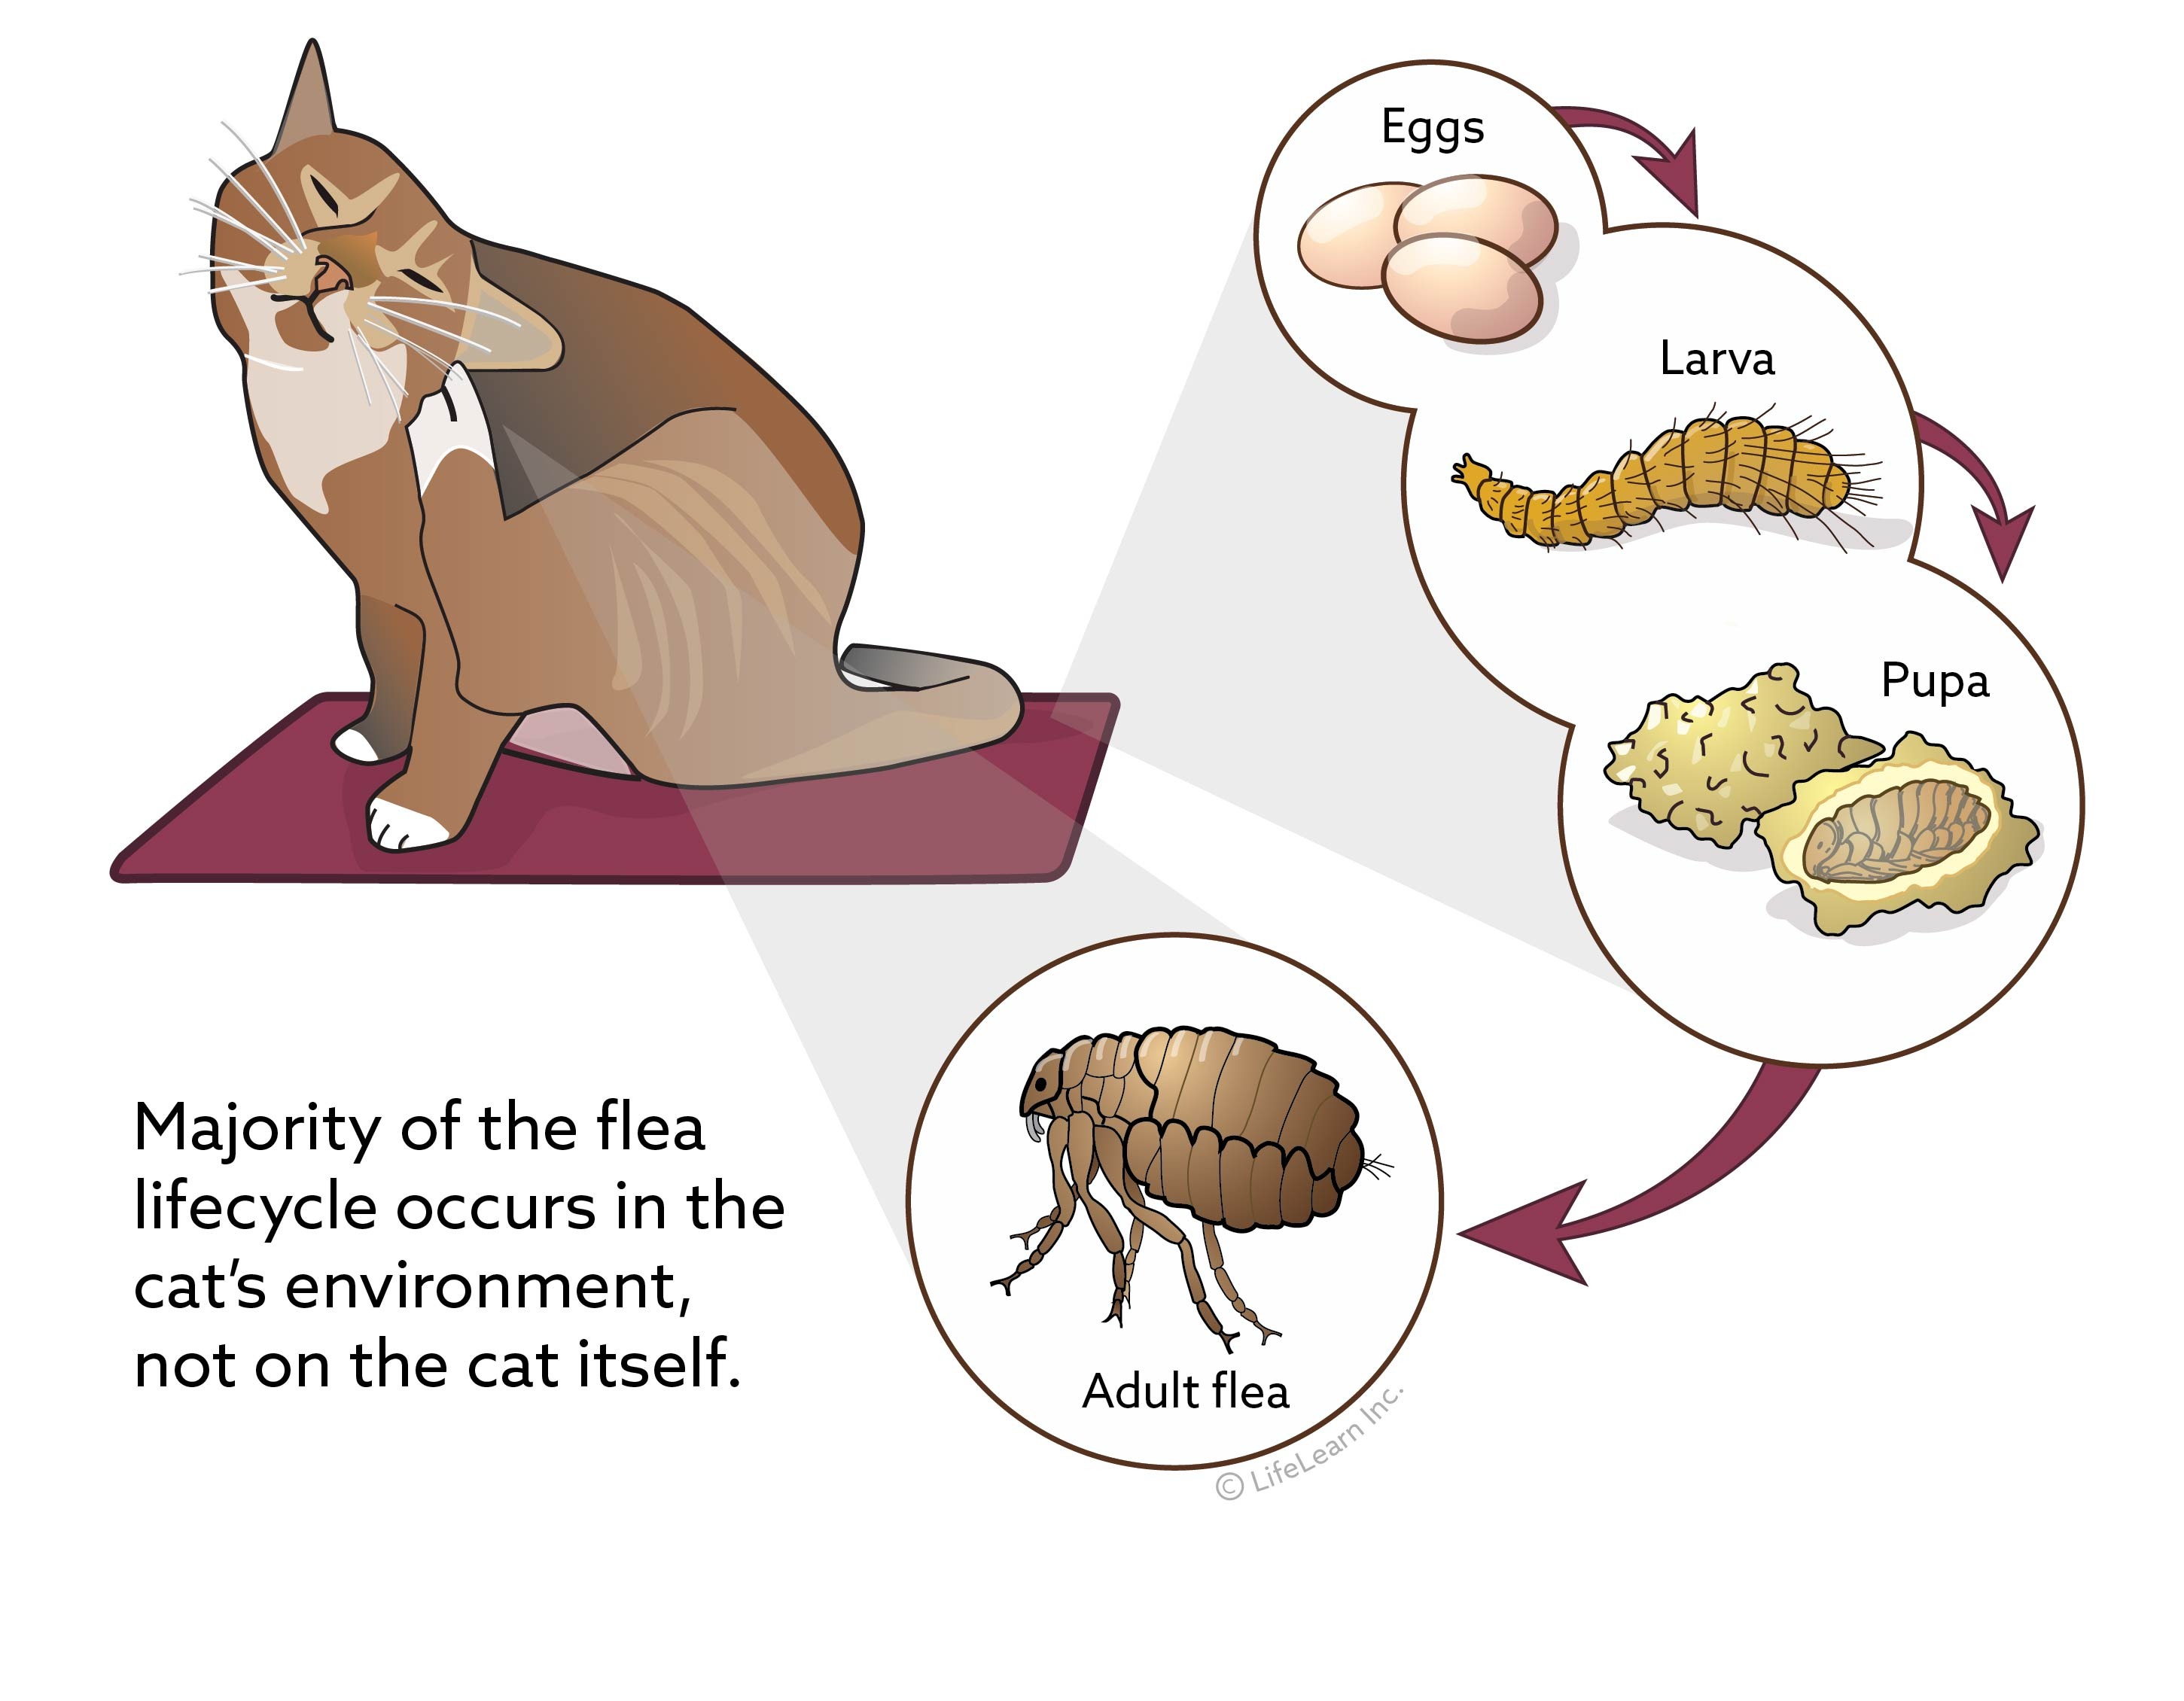 fleas_lifecycle_cat_2017-01